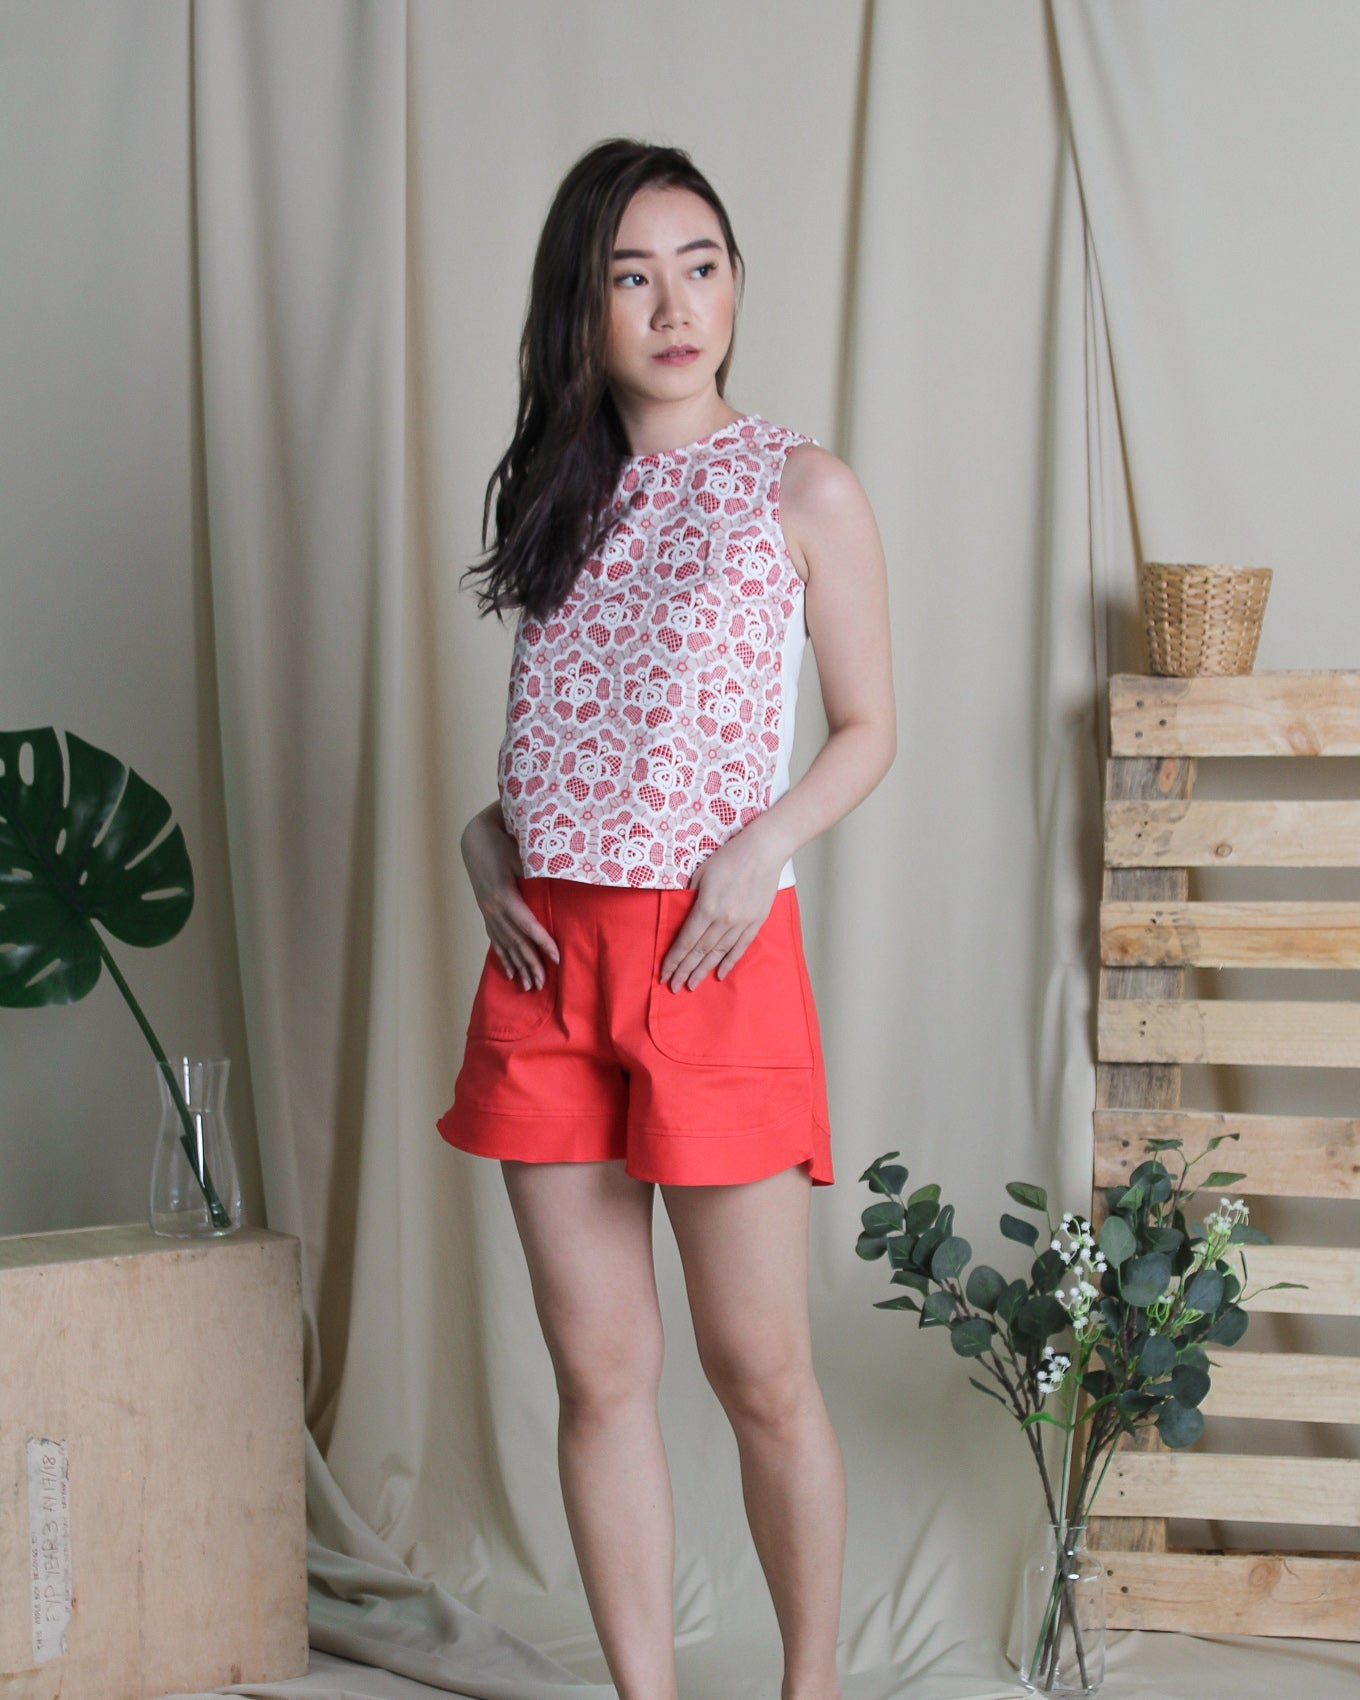 Besty Red Shorts (58238)